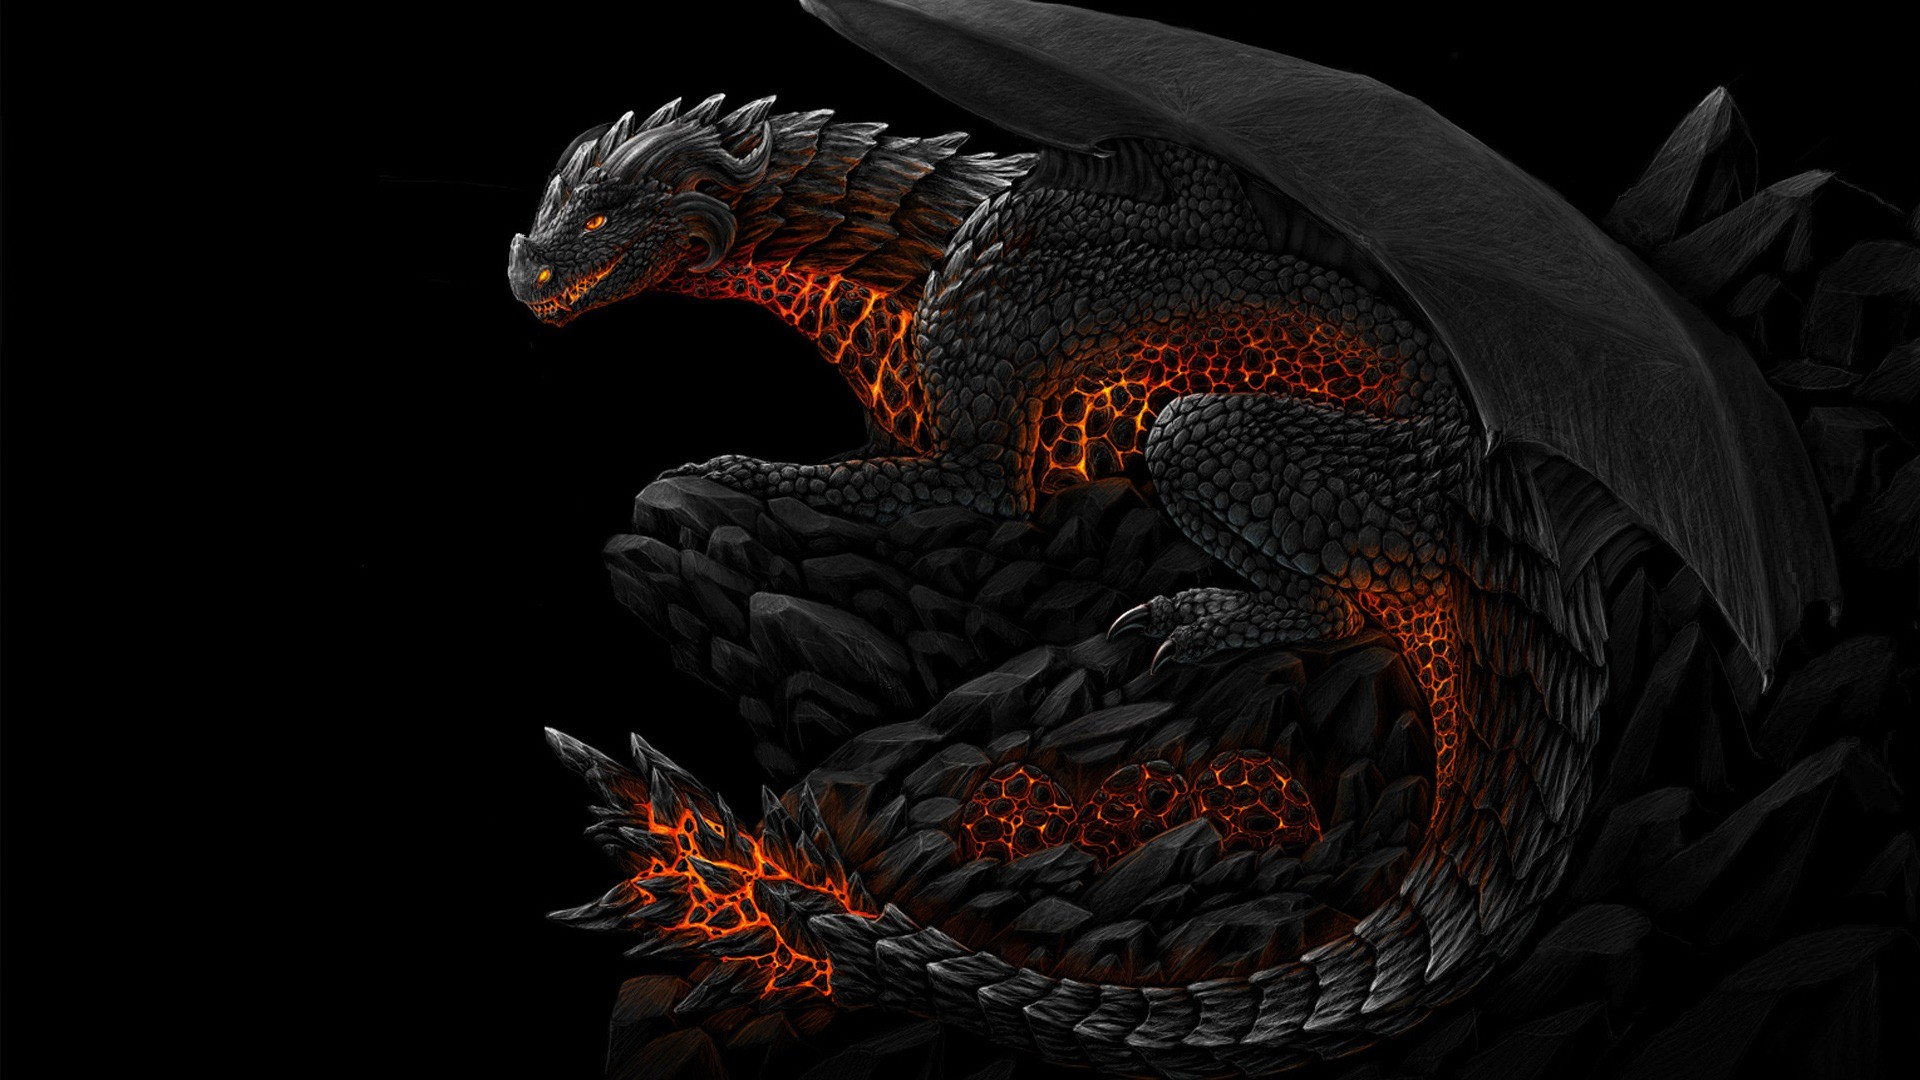 Dragons wallpapers pictures images for Immagini desktop hd 1920x1080